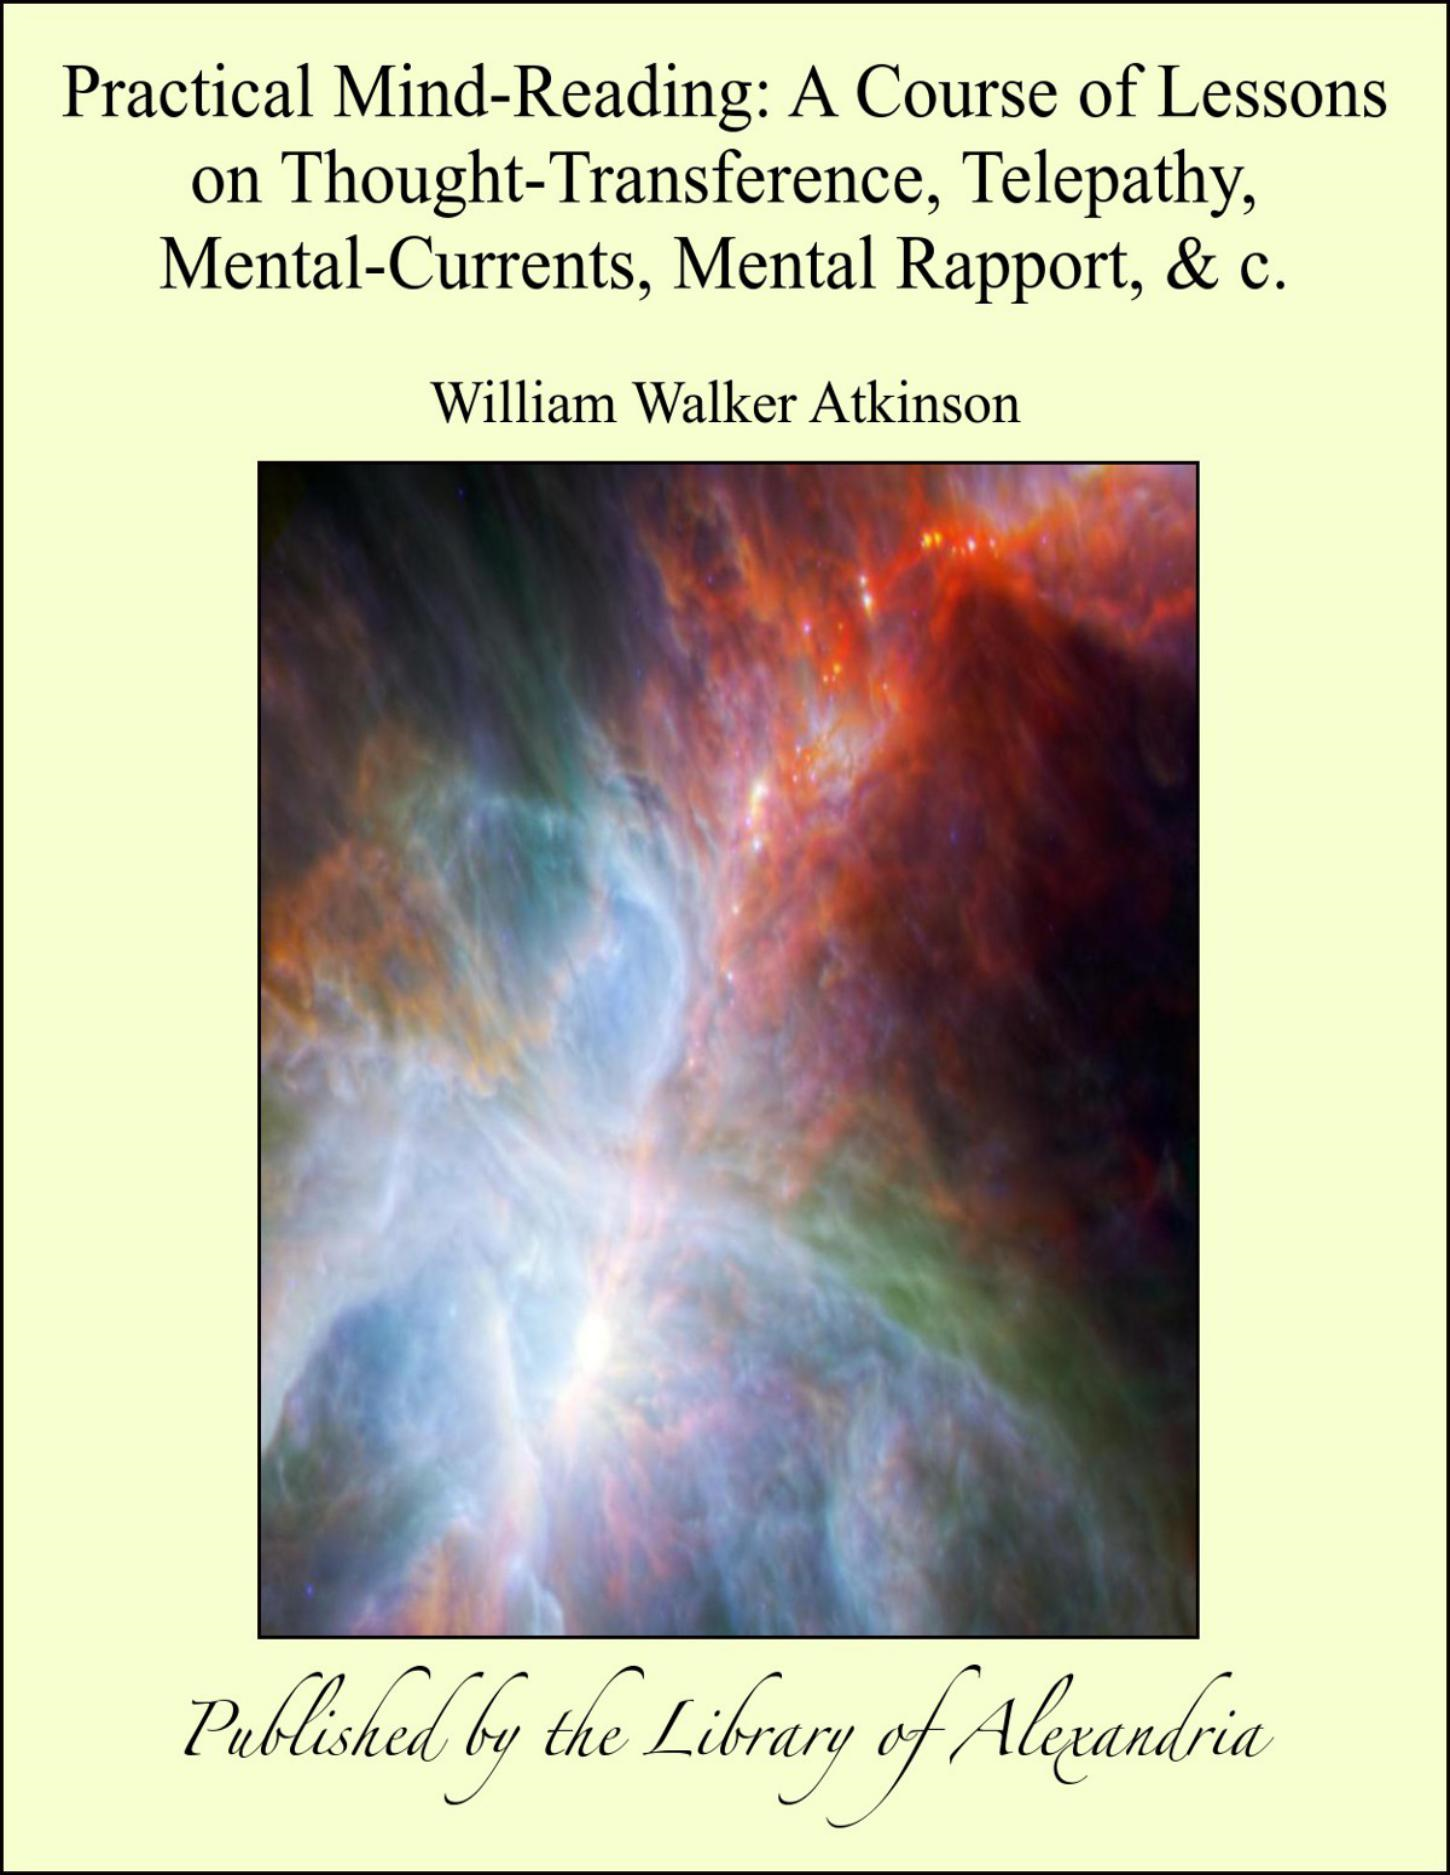 Practical Mind-Reading: A Course of Lessons on Thought-Transference, Telepathy, Mental-Currents, Mental Rapport, & c. By: William Walker Atkinson